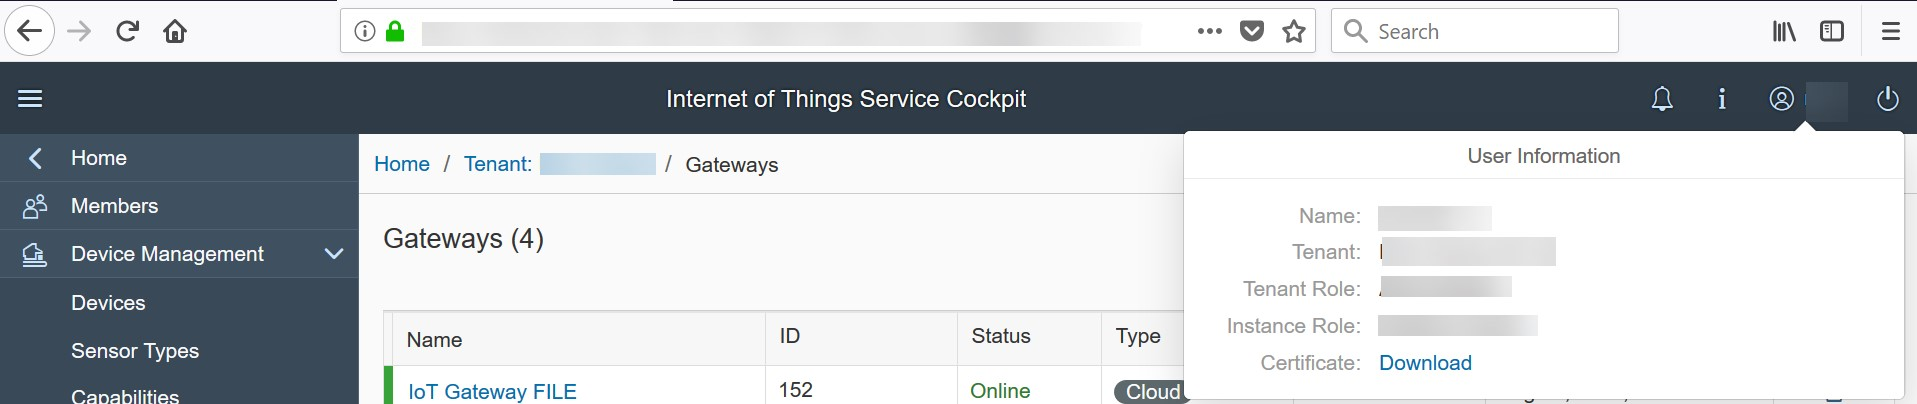 Implementing a Standard File Adapter for Internet of Things